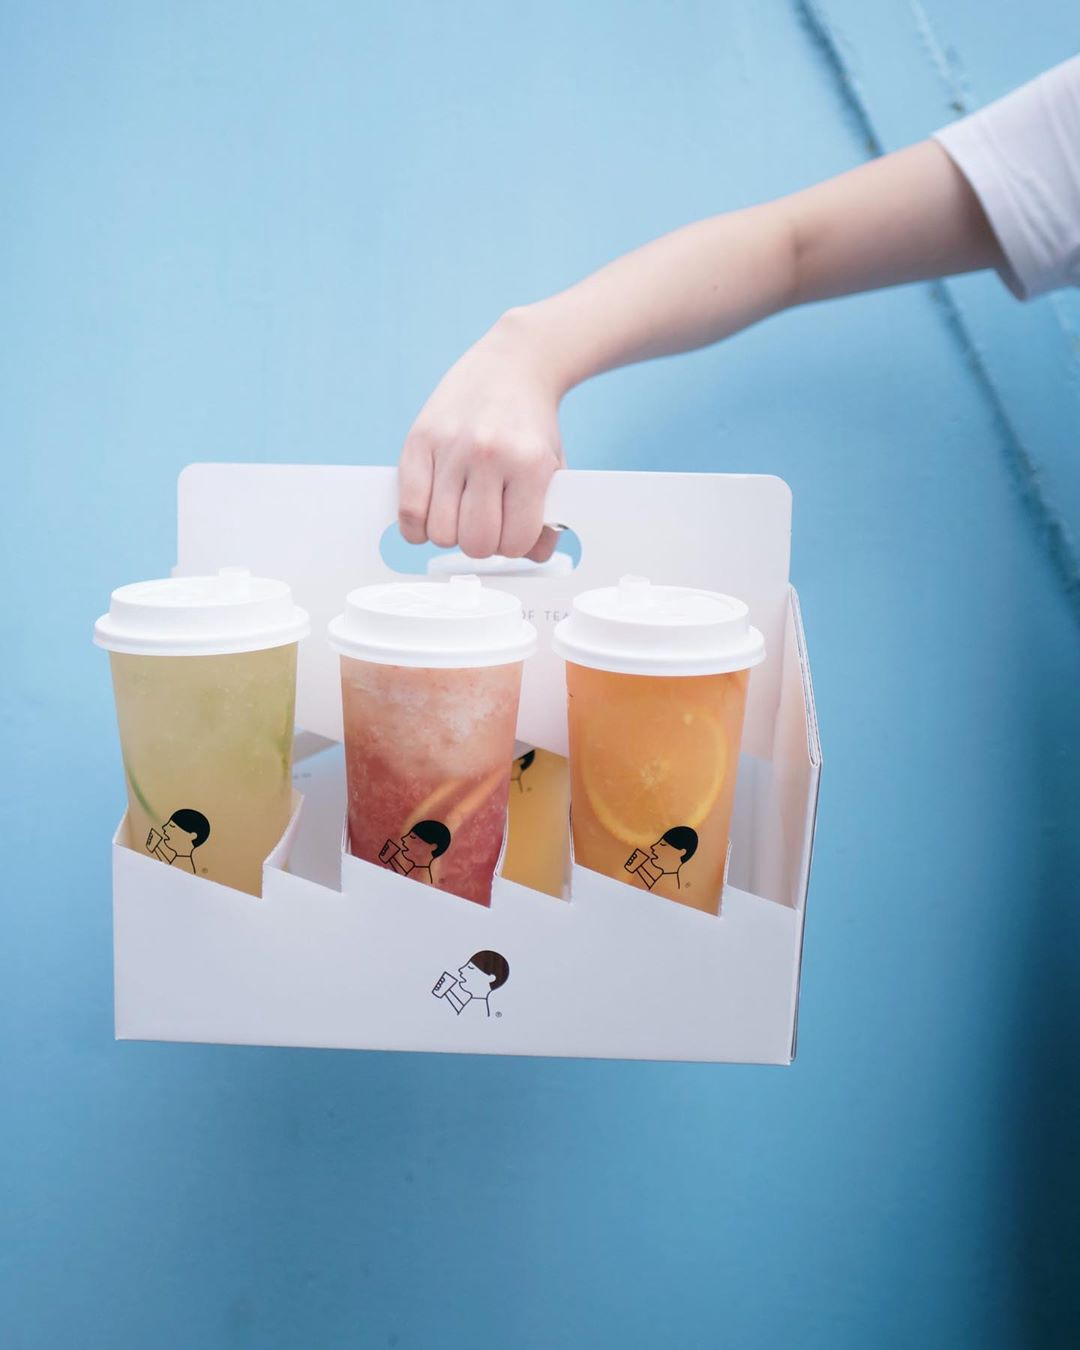 HeyTea Makes The Drink We've Been Looking For - Heated